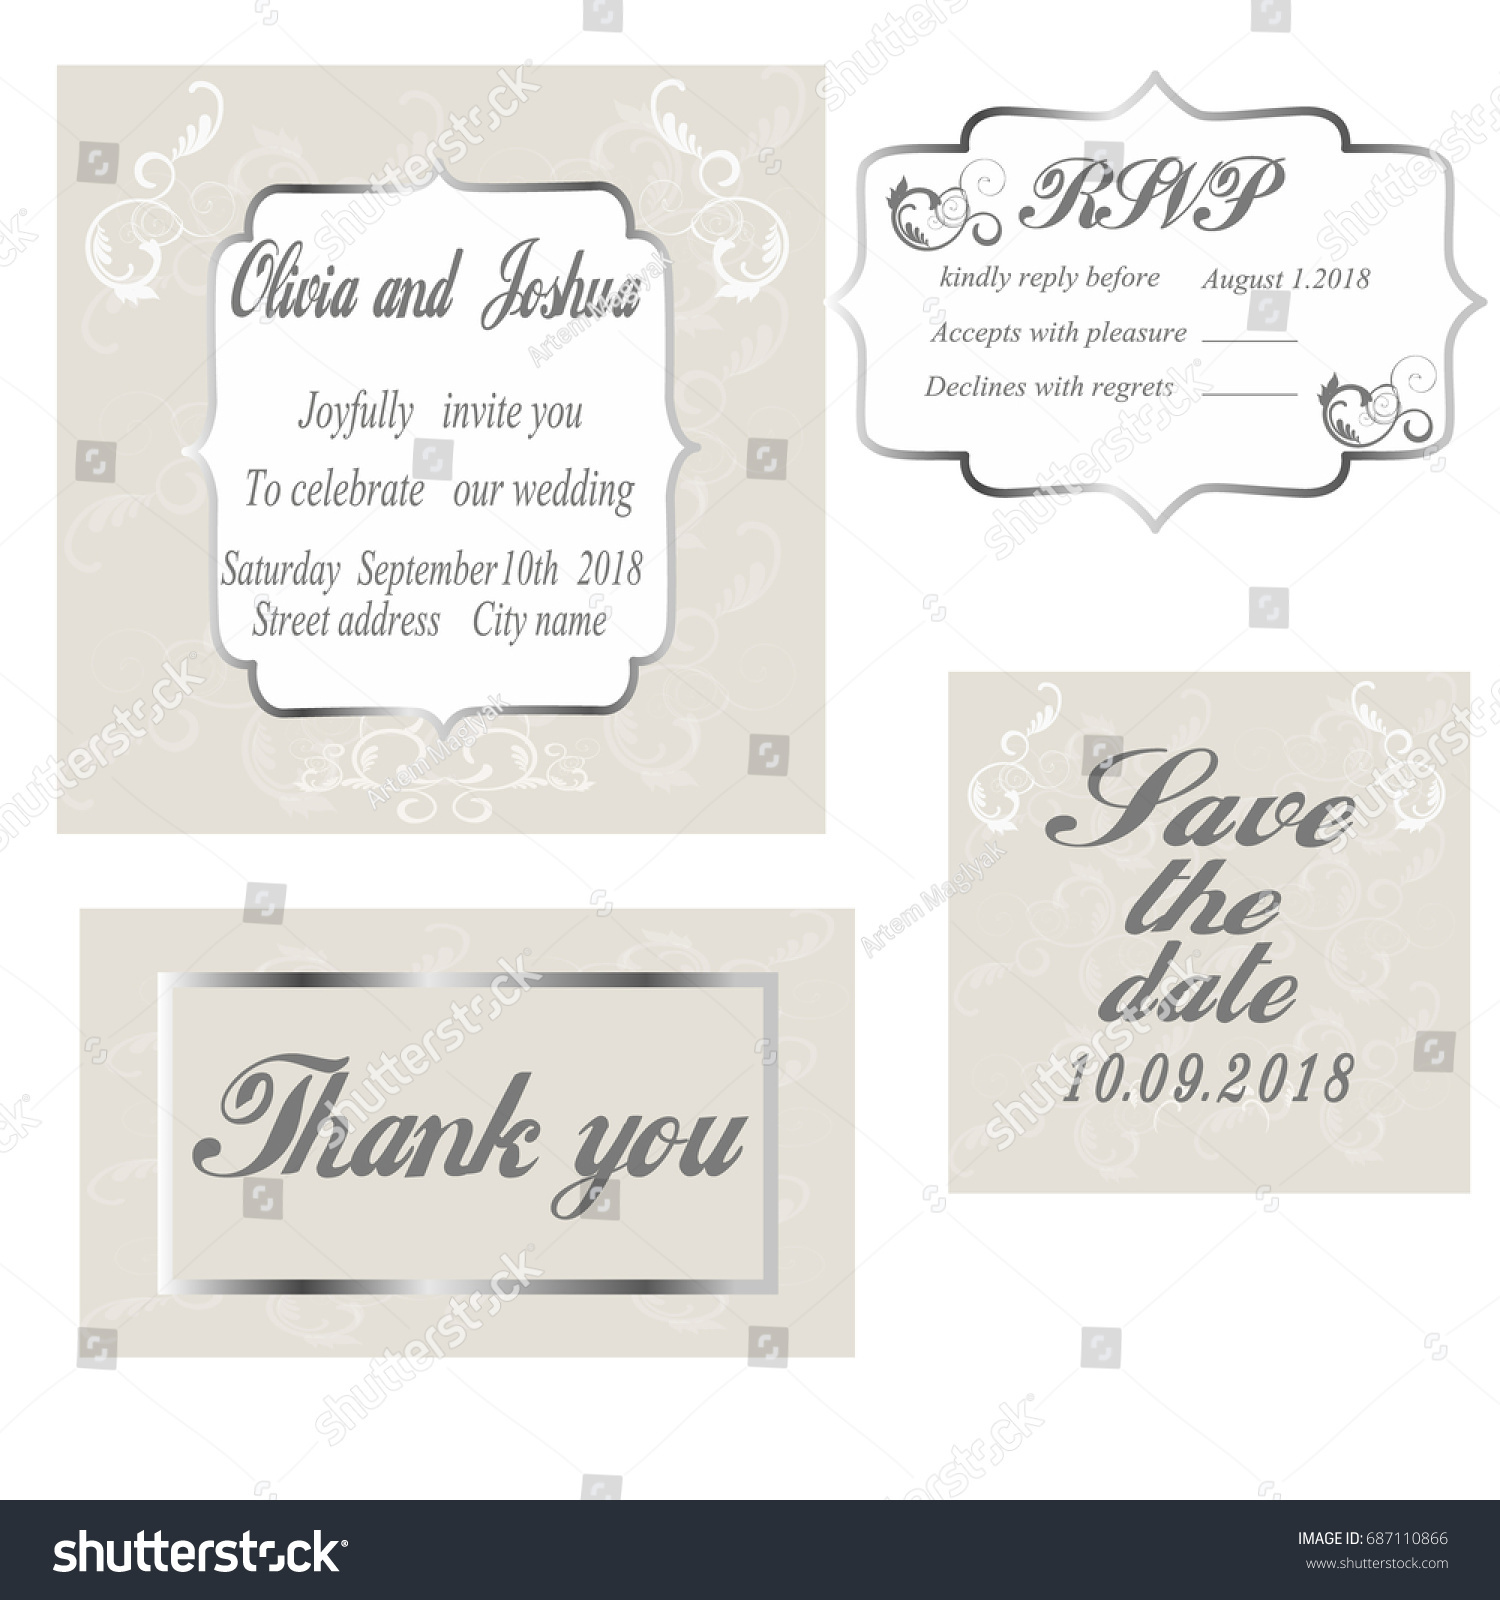 Vintage Wedding Invitation Template Modern Design Stock Vector ...